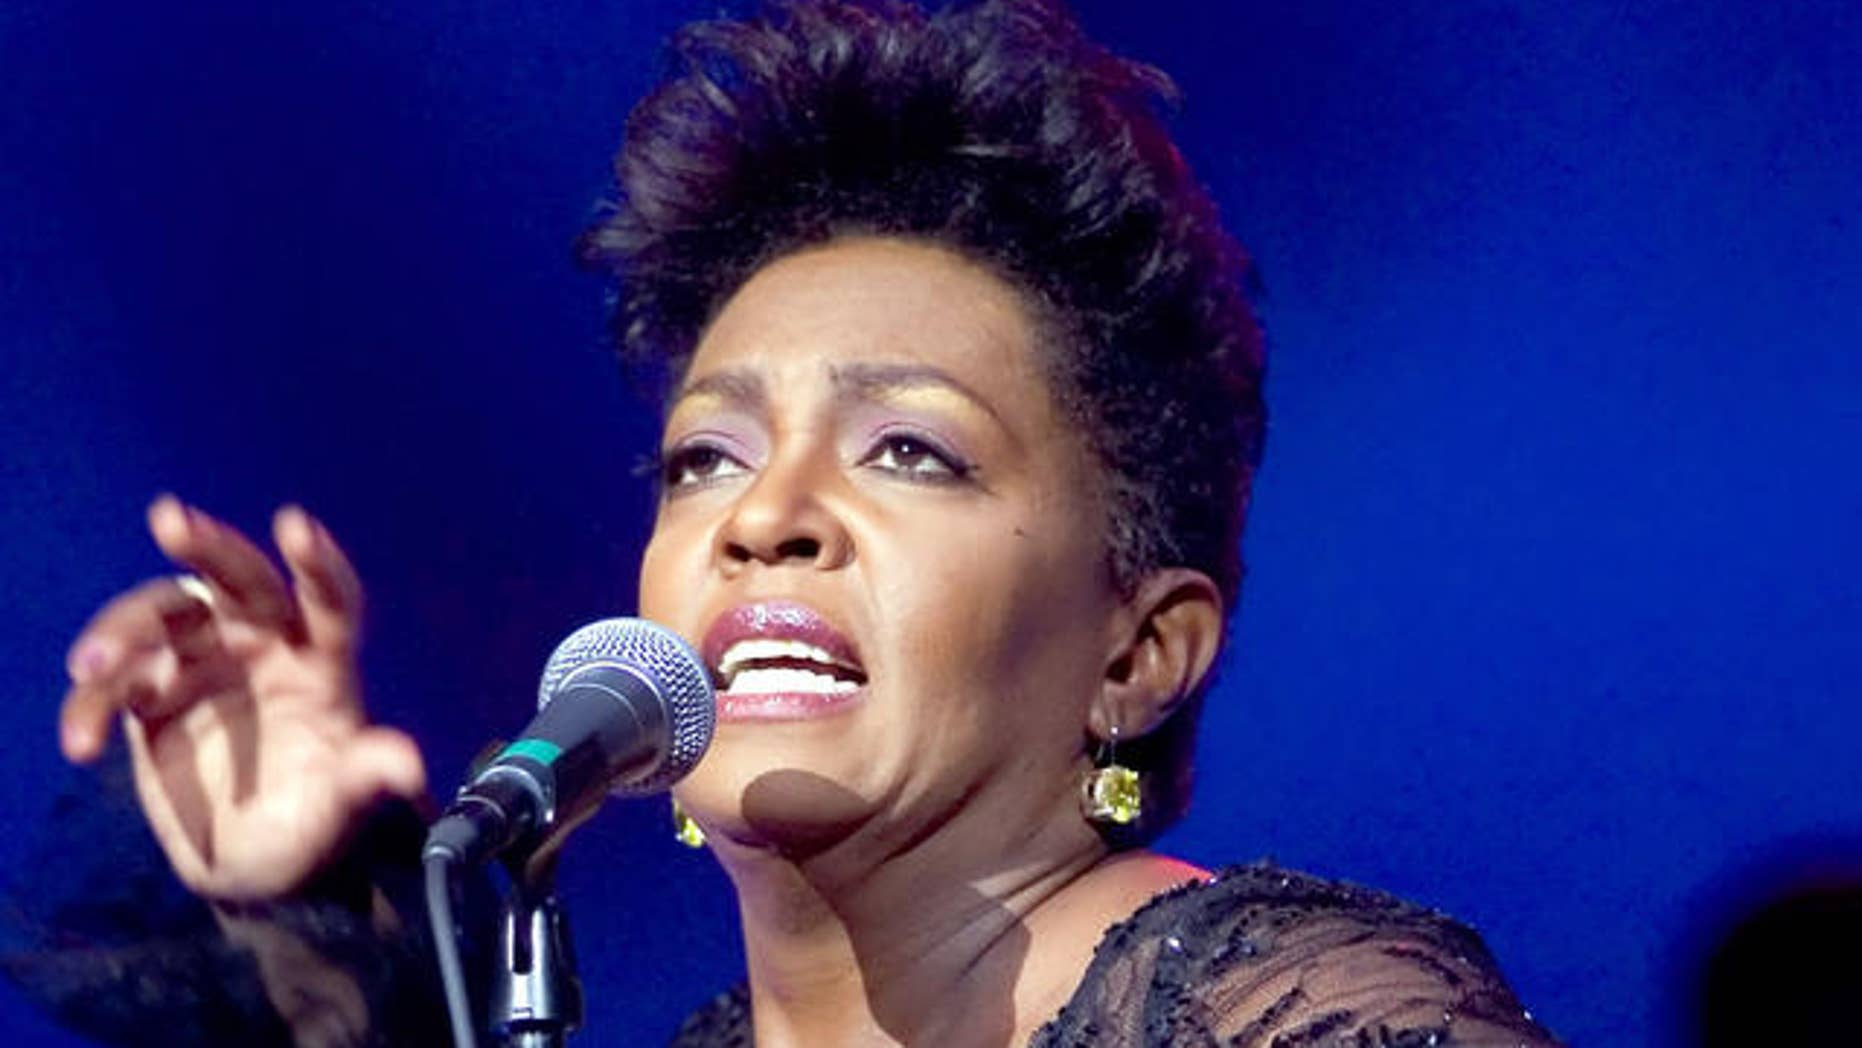 Anita Baker performs during a concert Thursday, July 26, 2007 at Radio City Music Hall in New York.